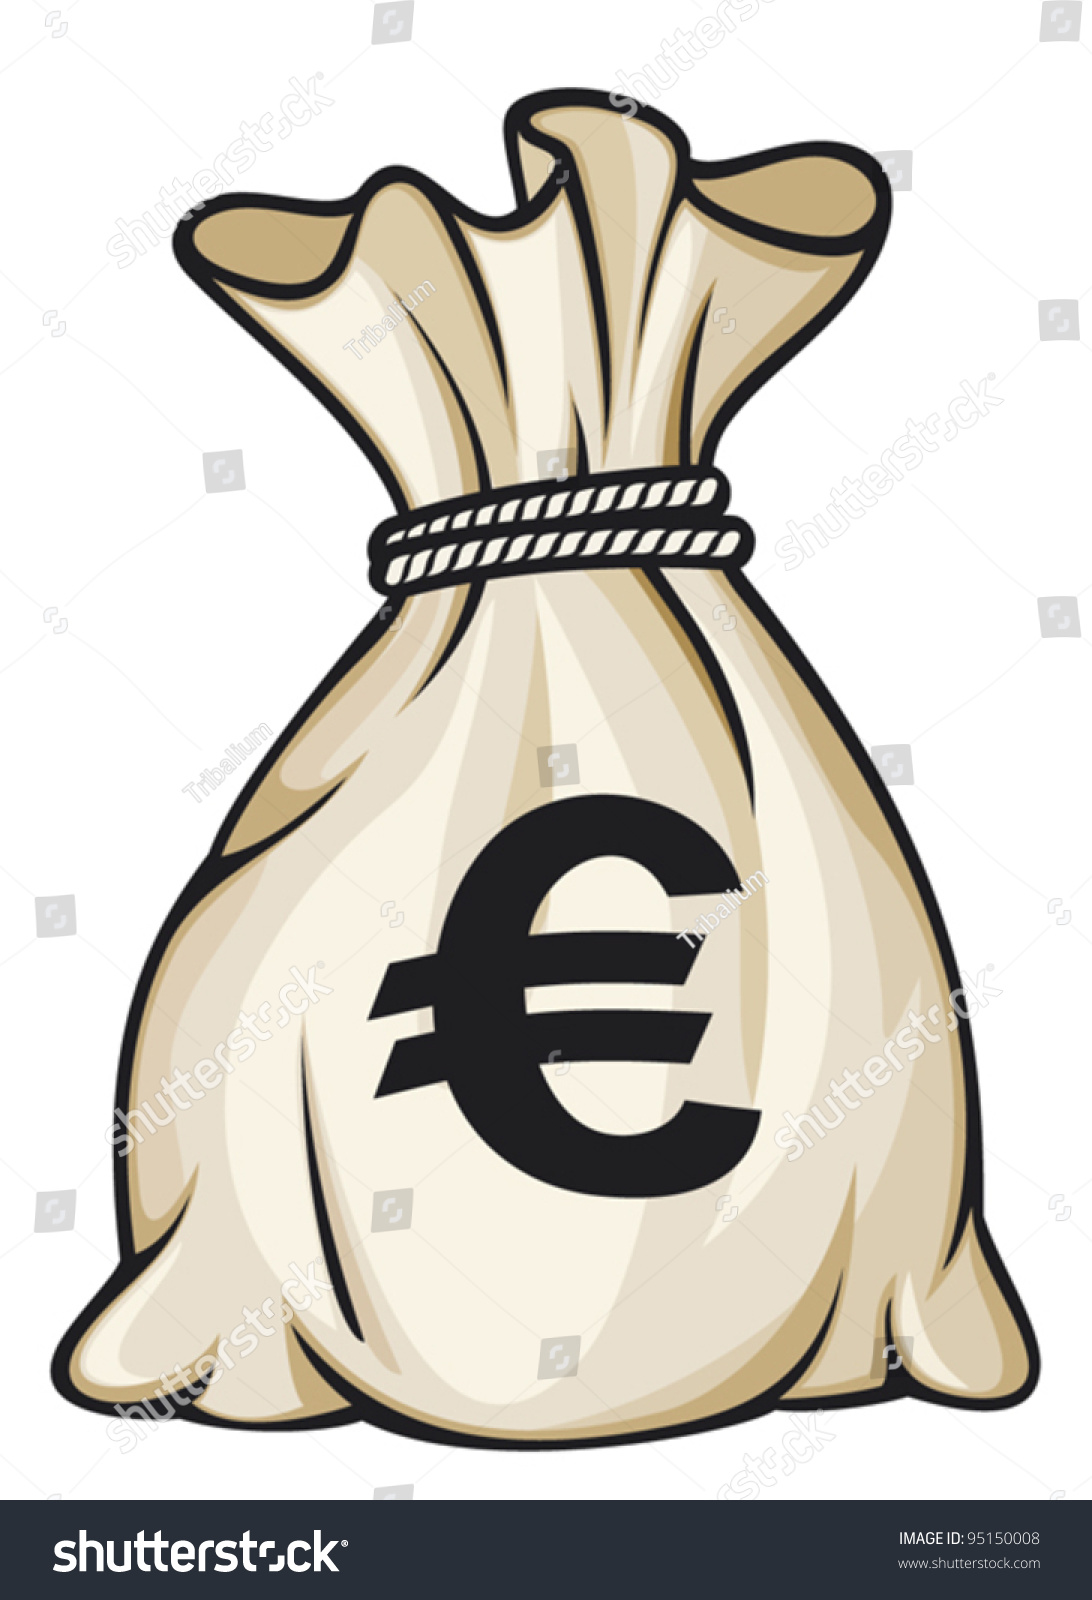 free clipart euro sign - photo #33